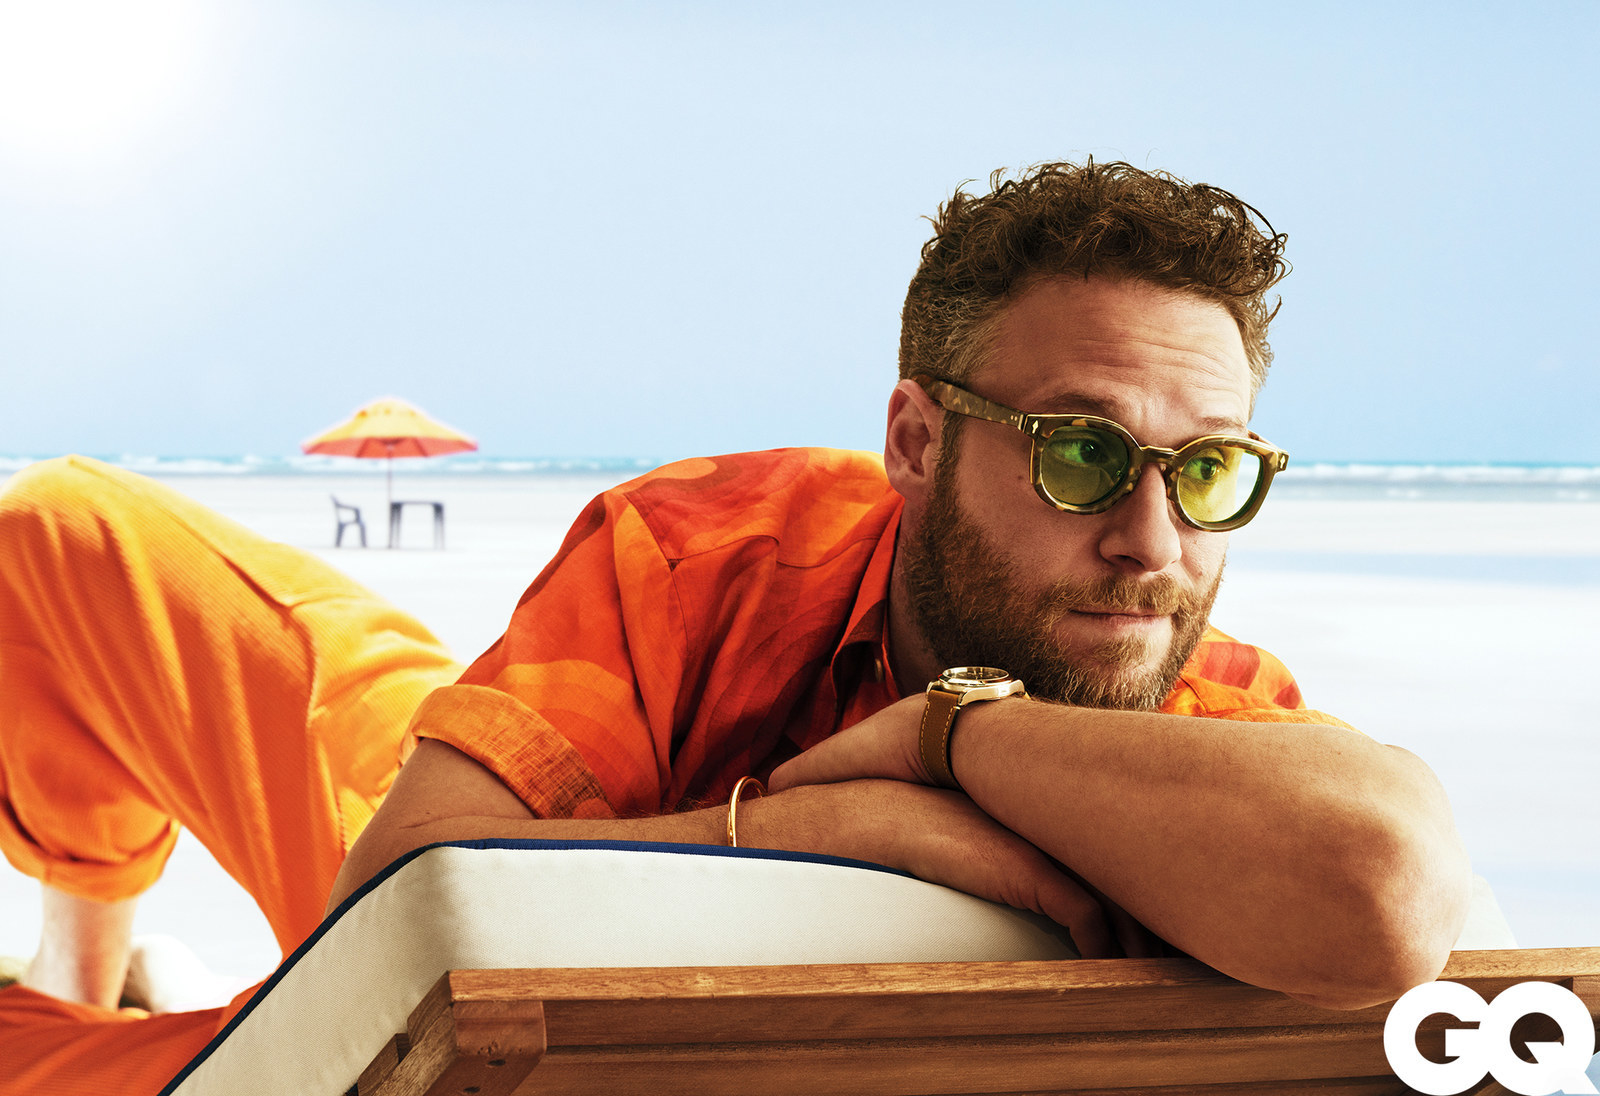 Morning Update: Seth Rogen, Thirst Object